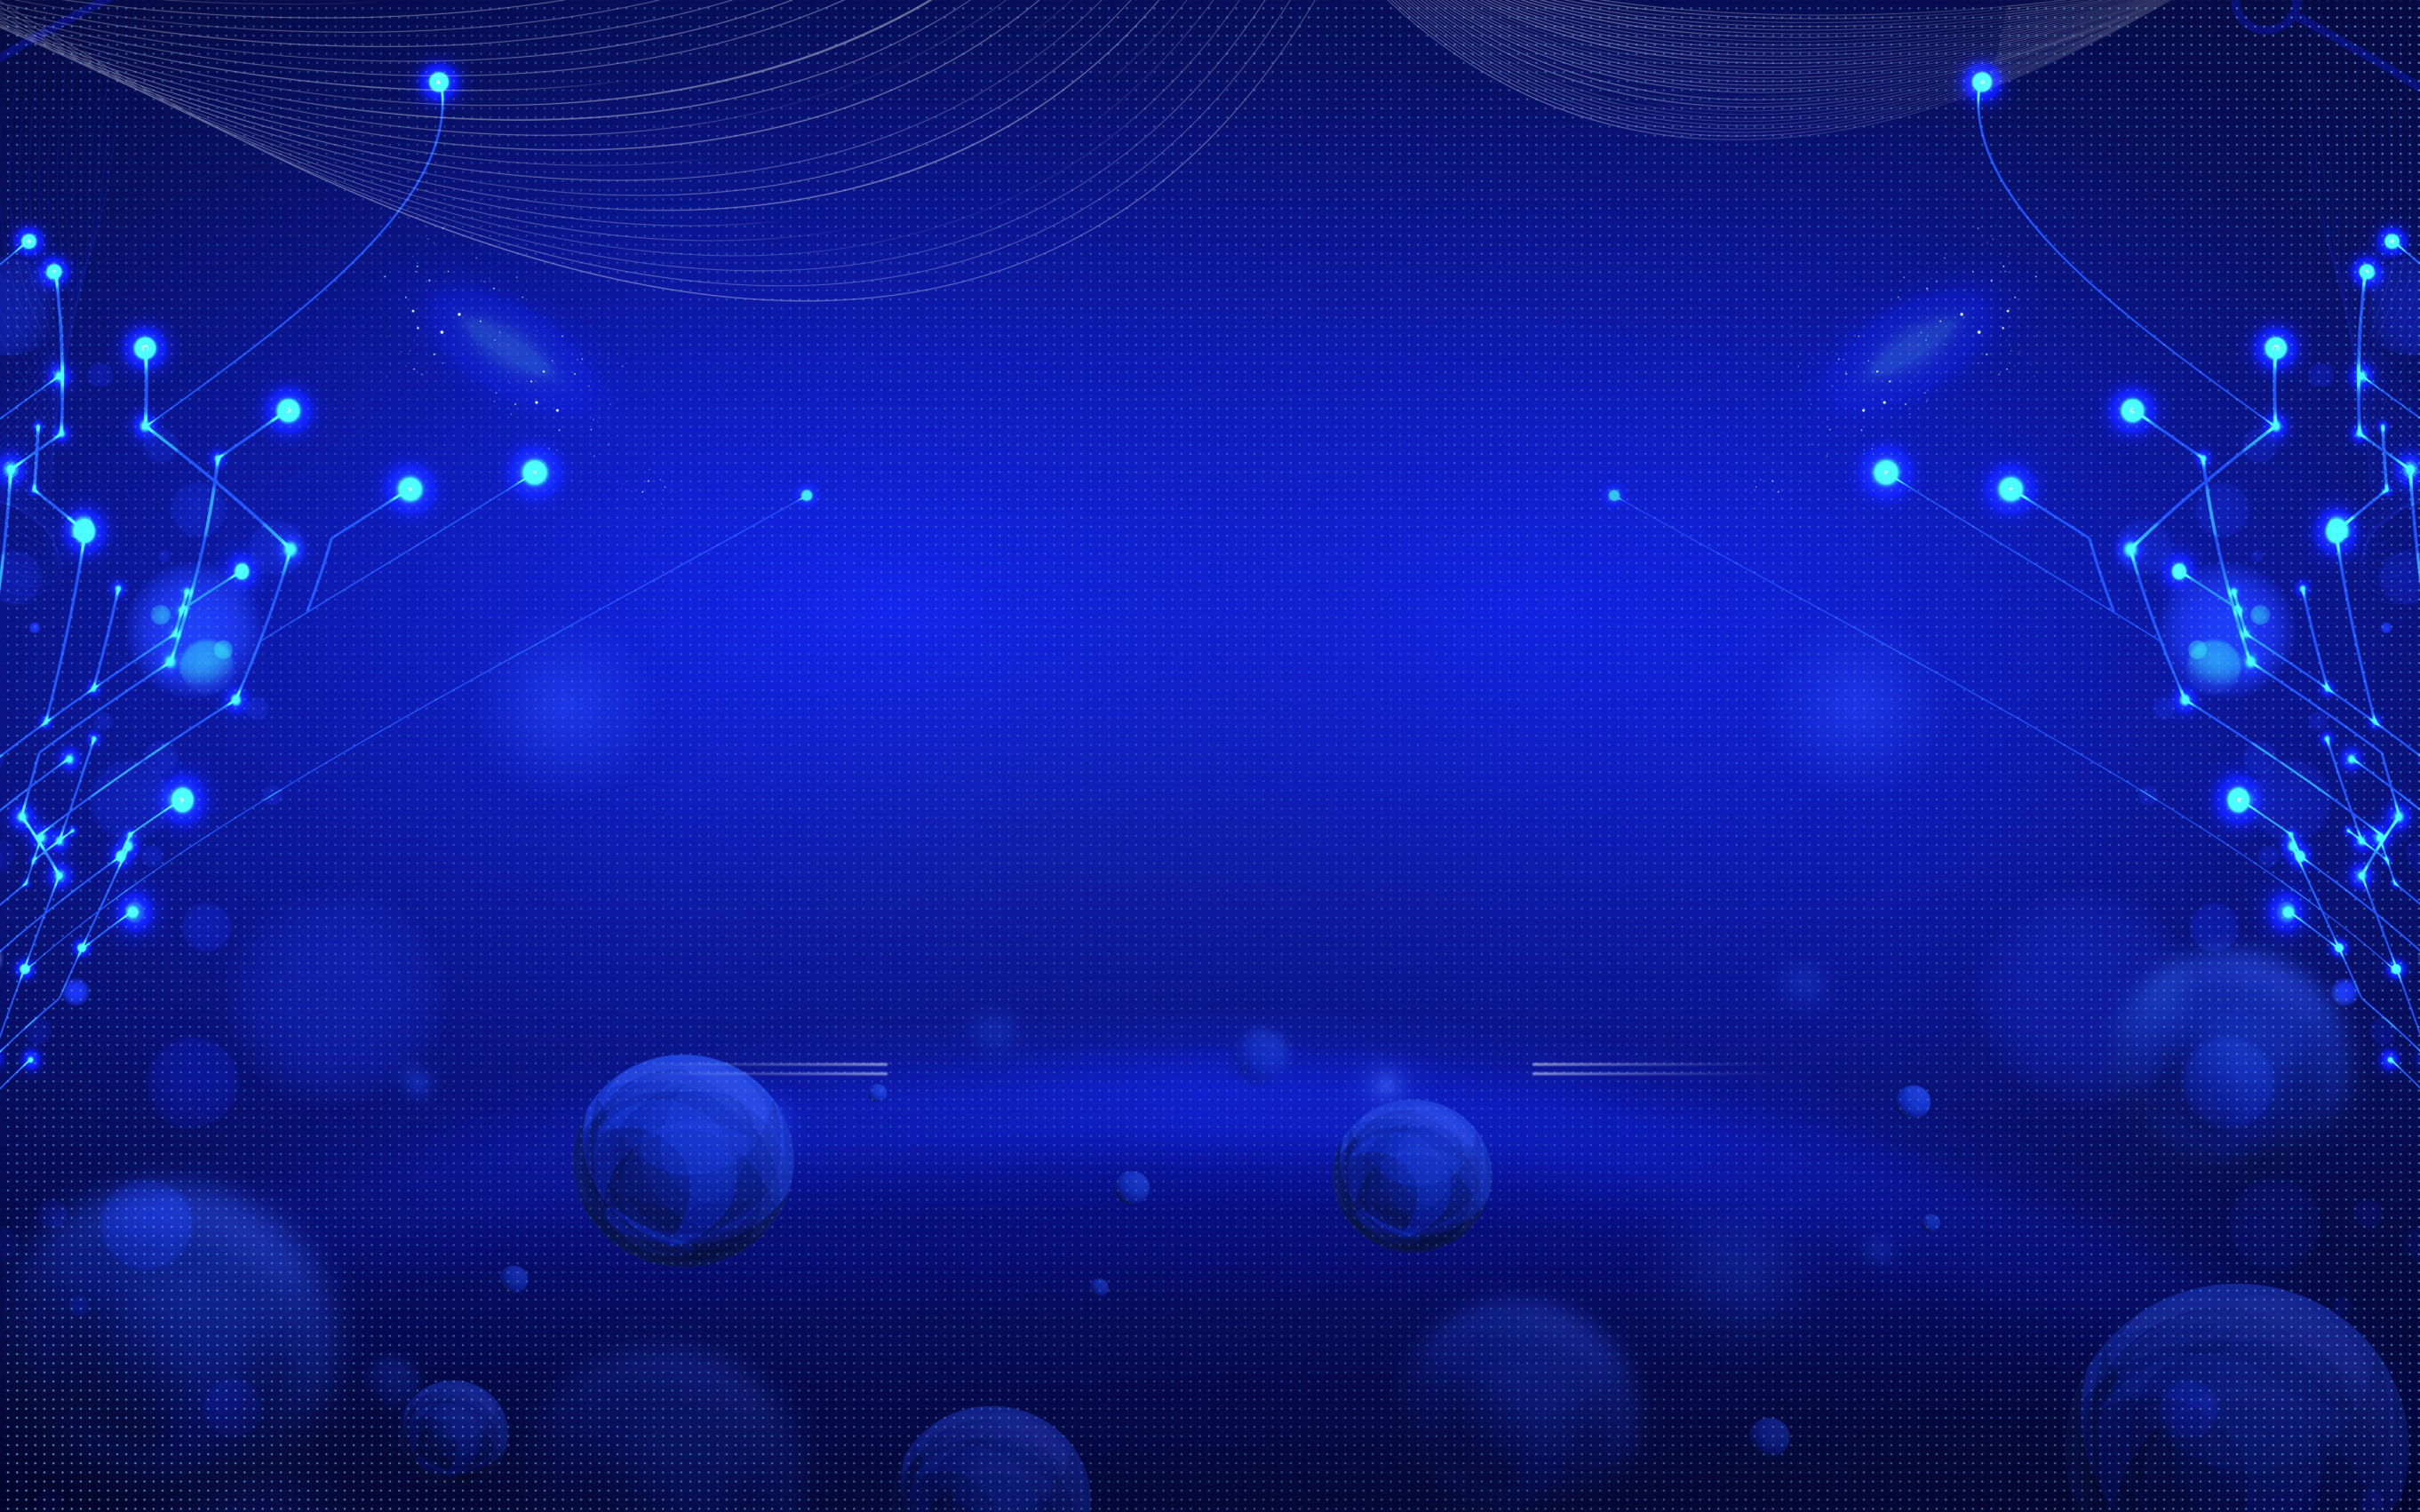 background ceremony awards banner technology poster annual recognition mysterious simple music psd backgrounds material pngtree meeting stage colorful plan purple